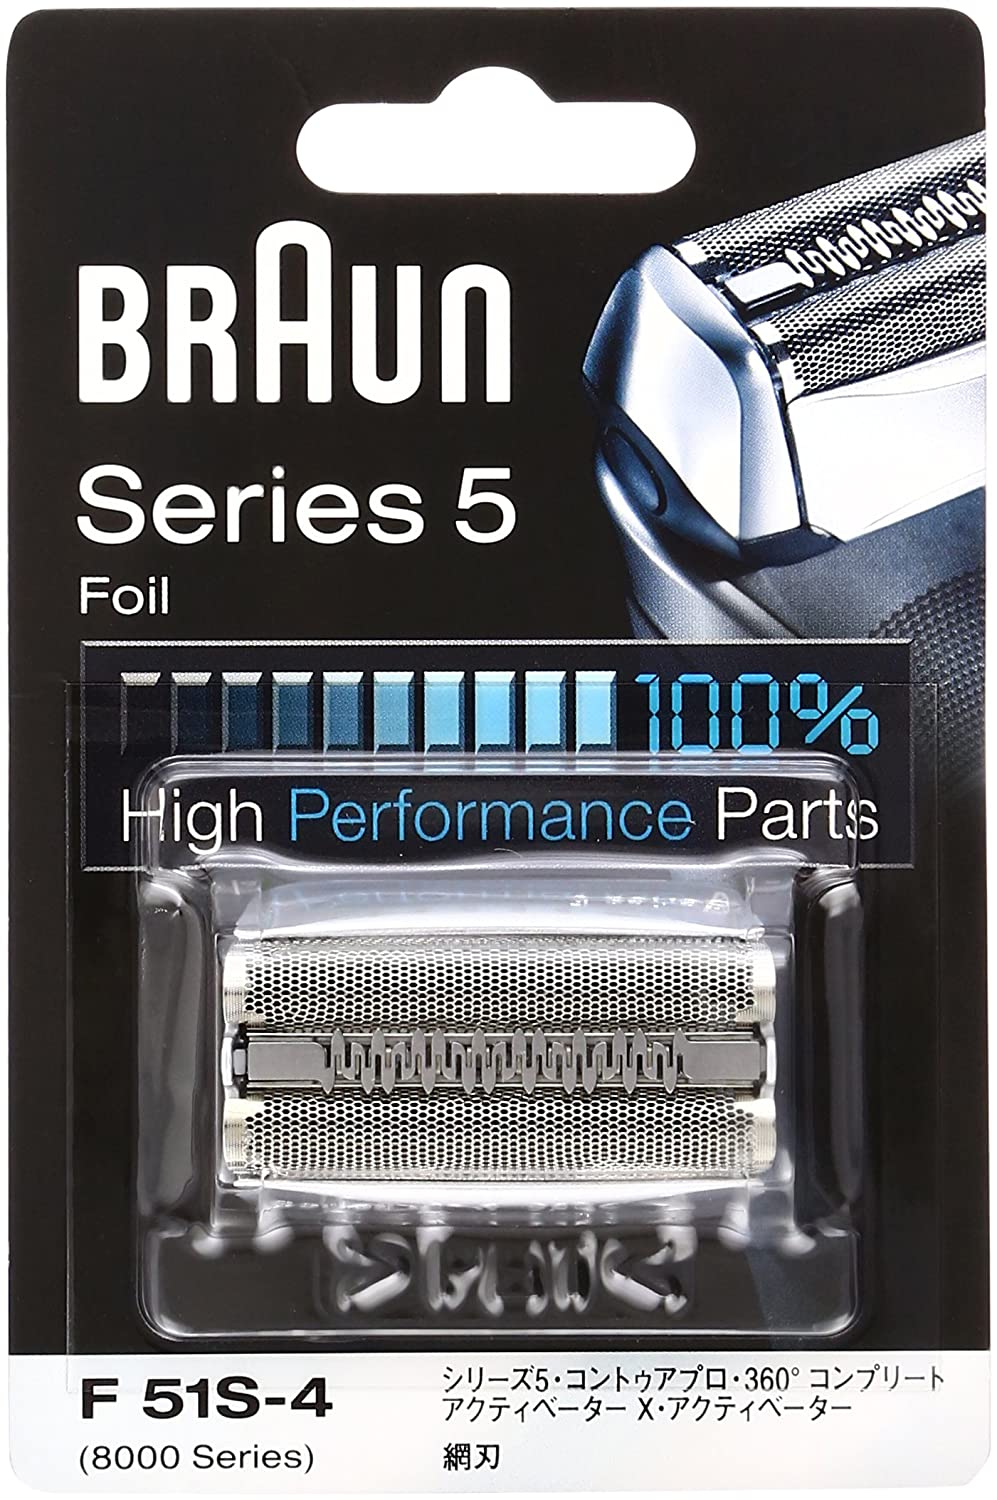 Braun Series 5 Foil Replacement Pack for 8000 Series (japan import) F51S-4